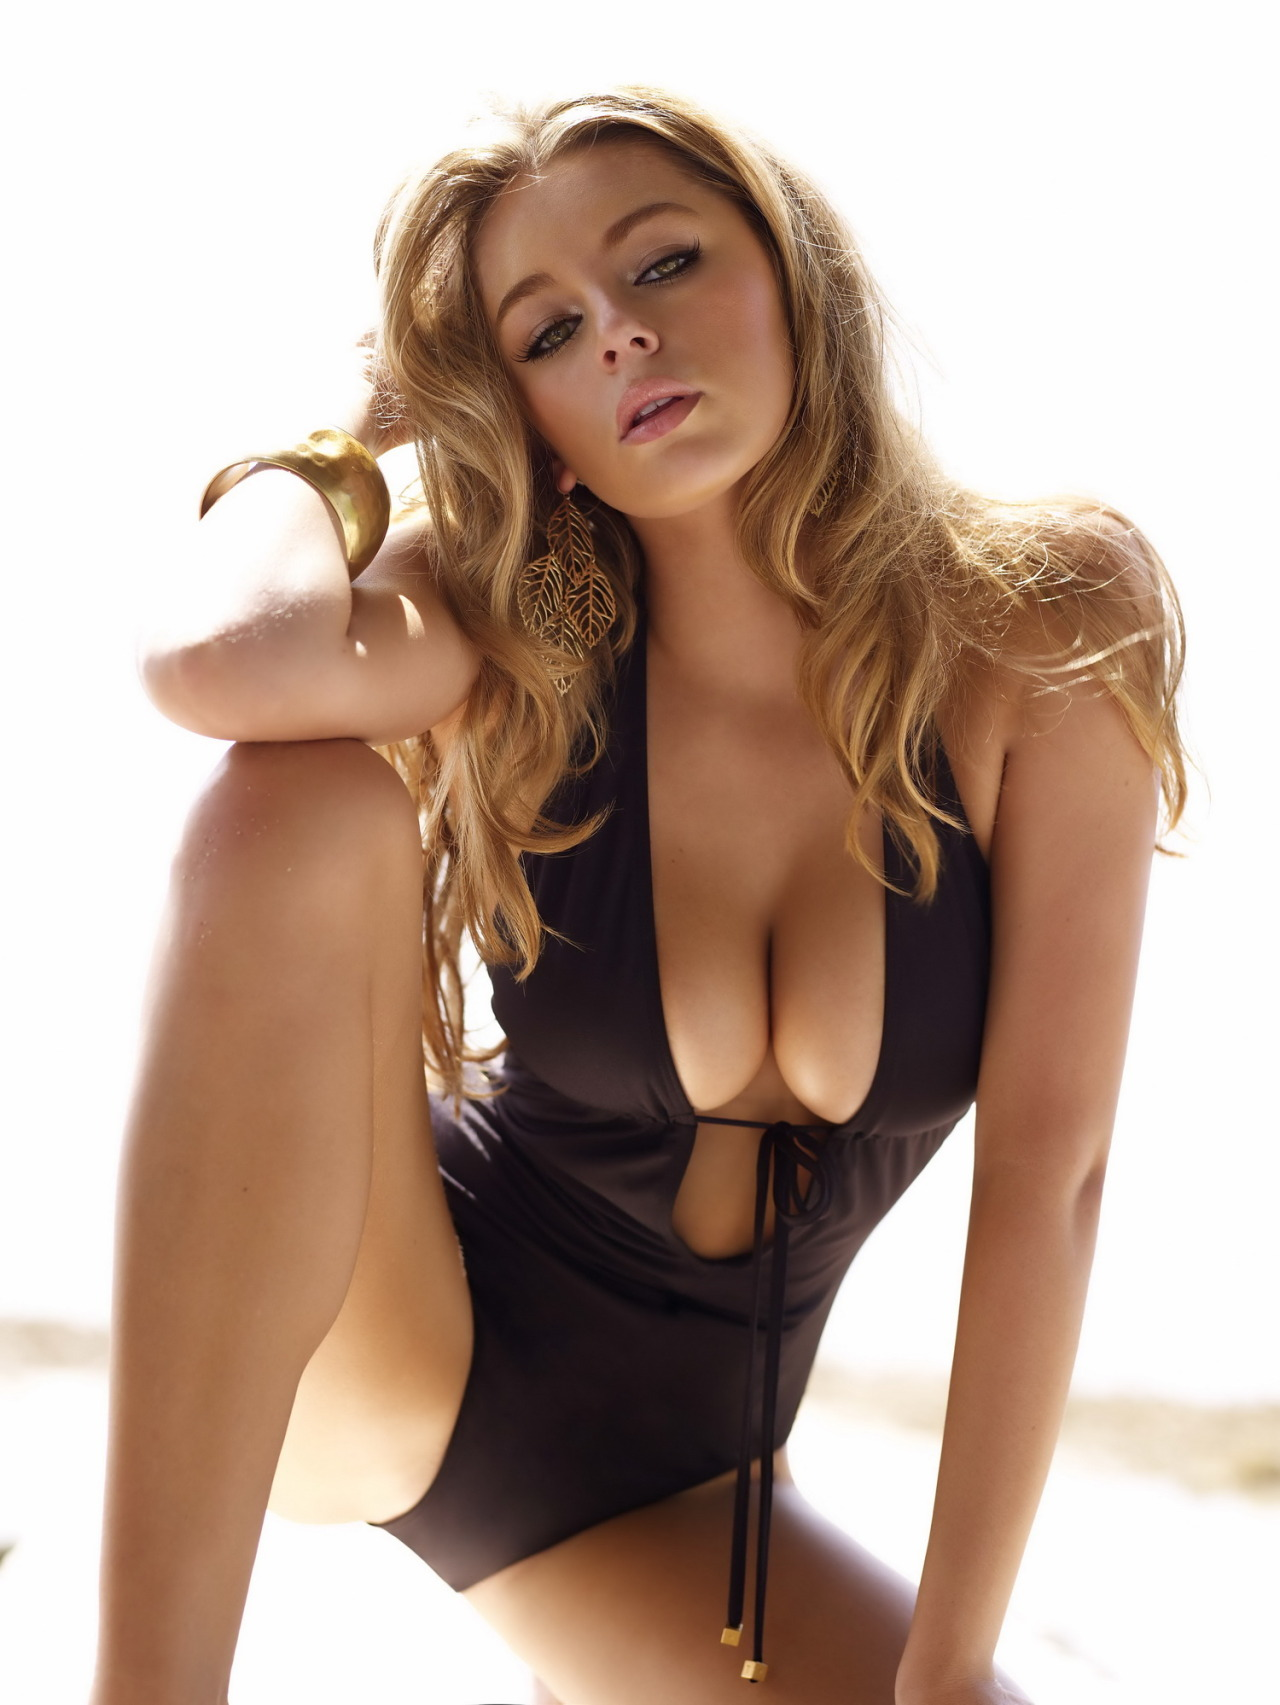 aetroll:  Keeley Hazell Enjoy this sexy English model, born 1986. Read more here.